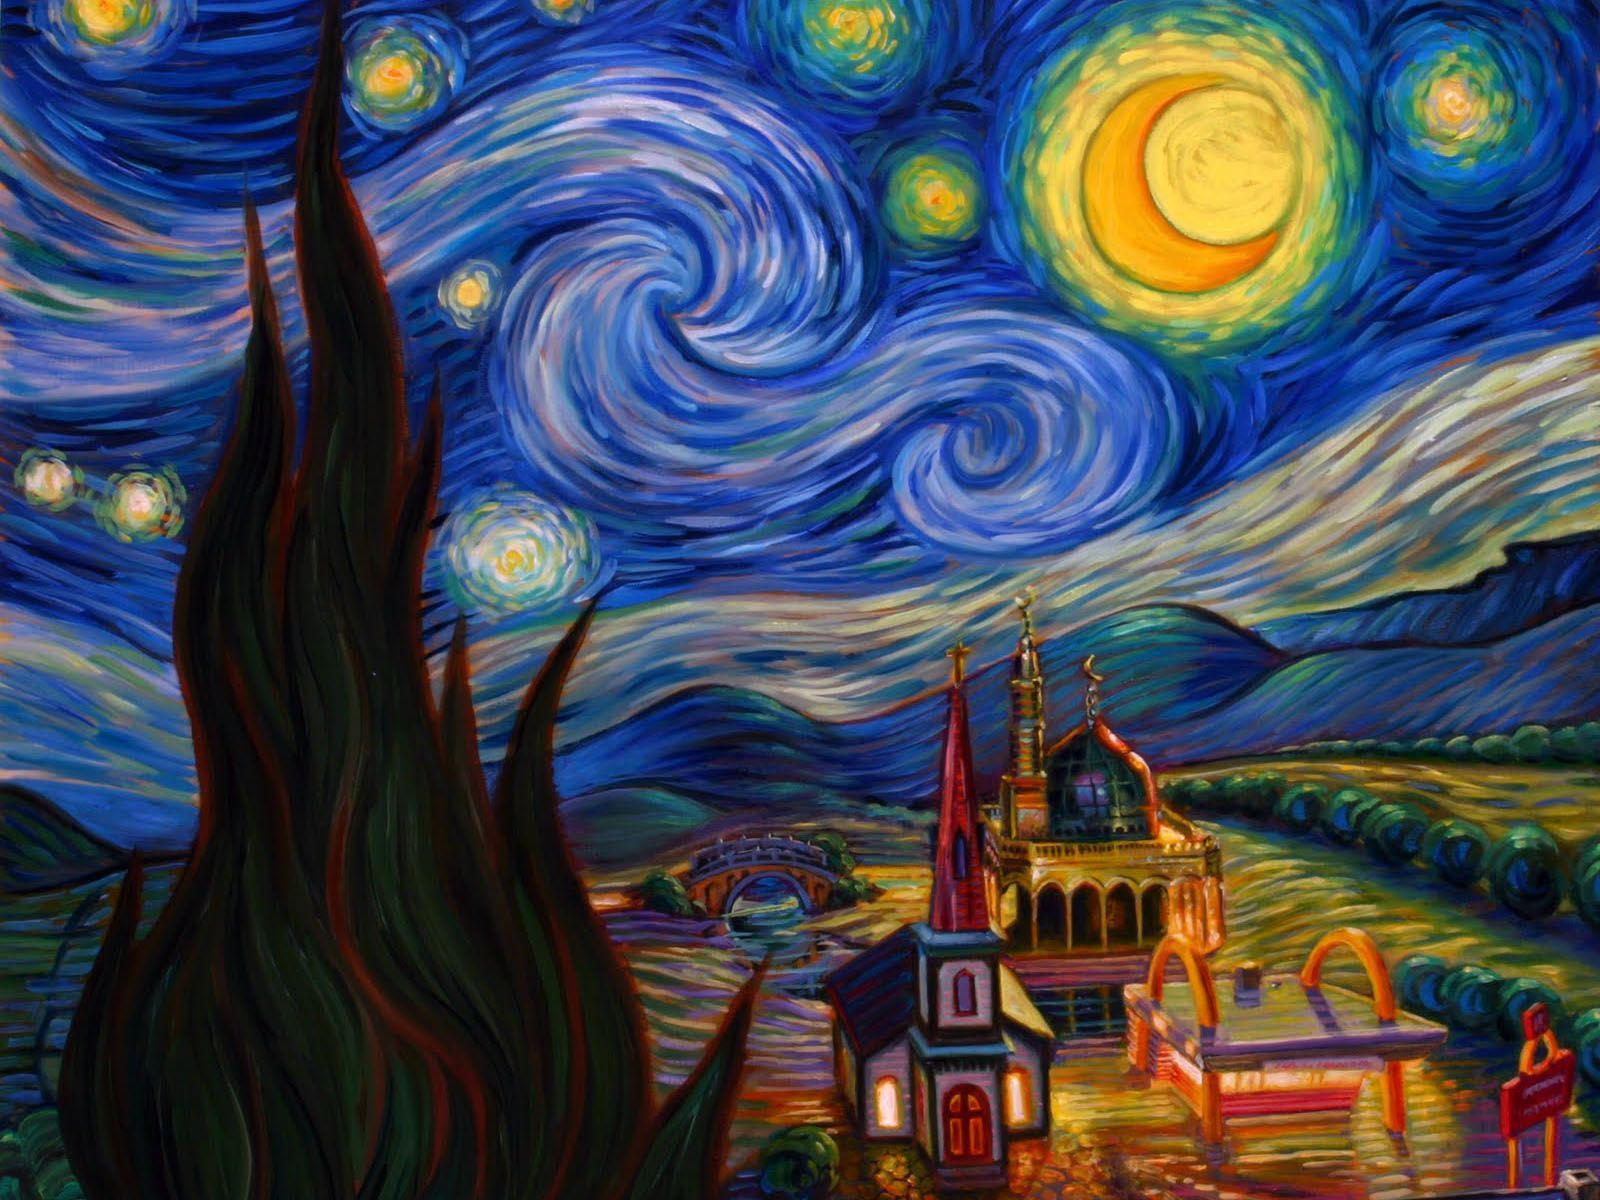 1600x1200 Starry night wallpapers - SF Wallpaper